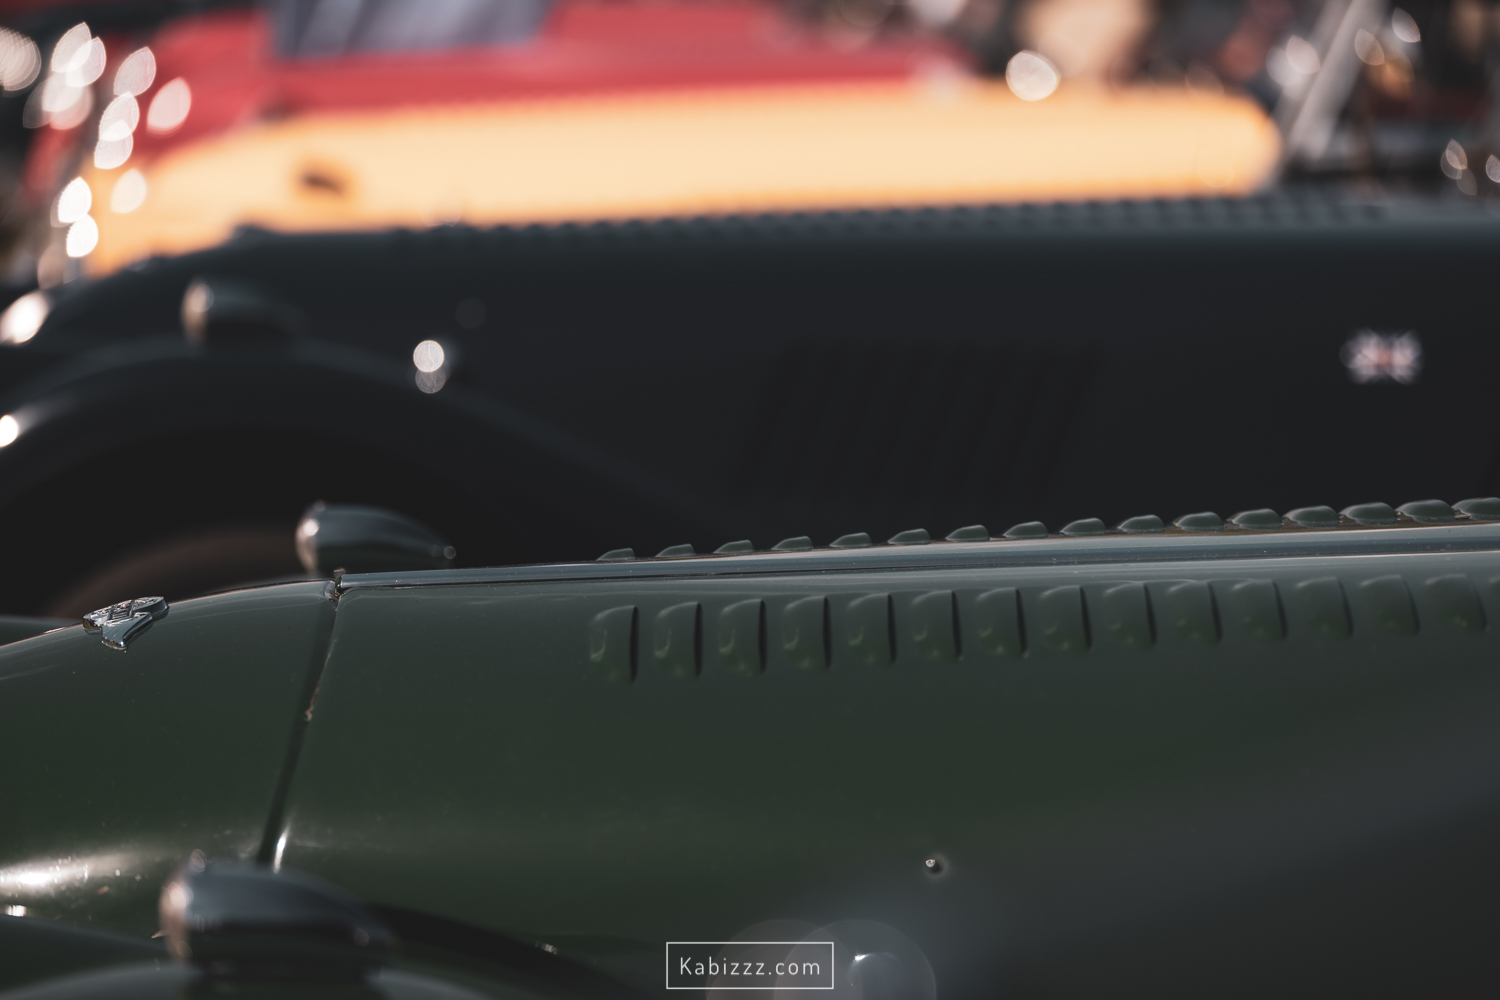 Kabizzz_Photography_Stirling_District_Classic _cars-89.jpg